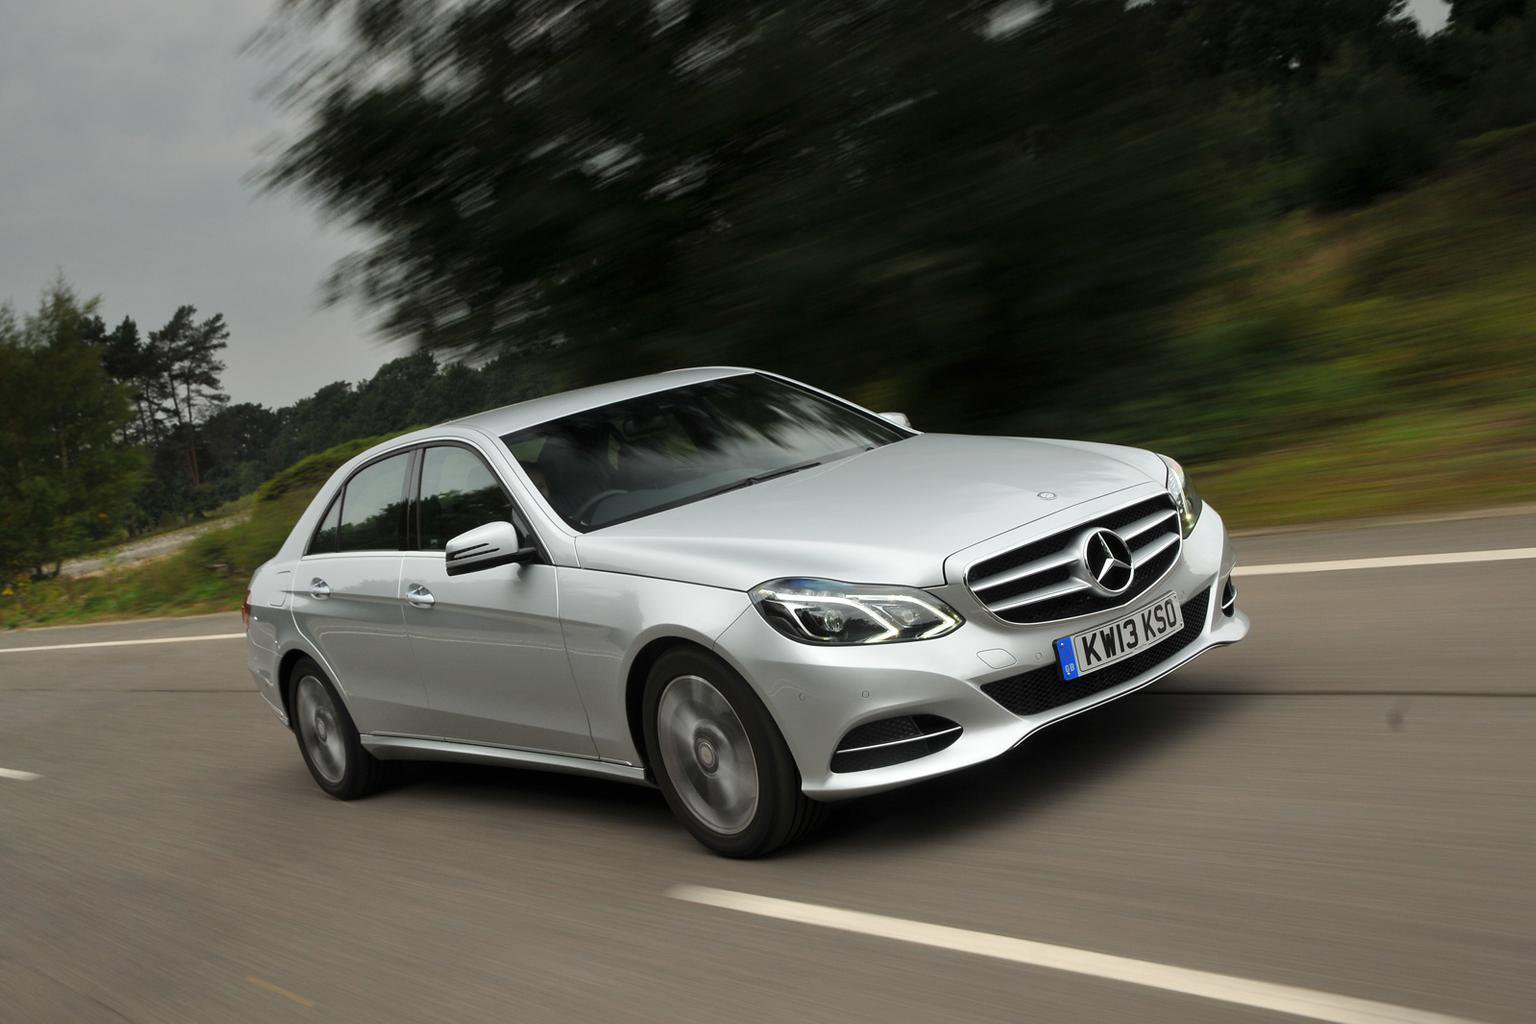 Frugal cars star in this week's deals